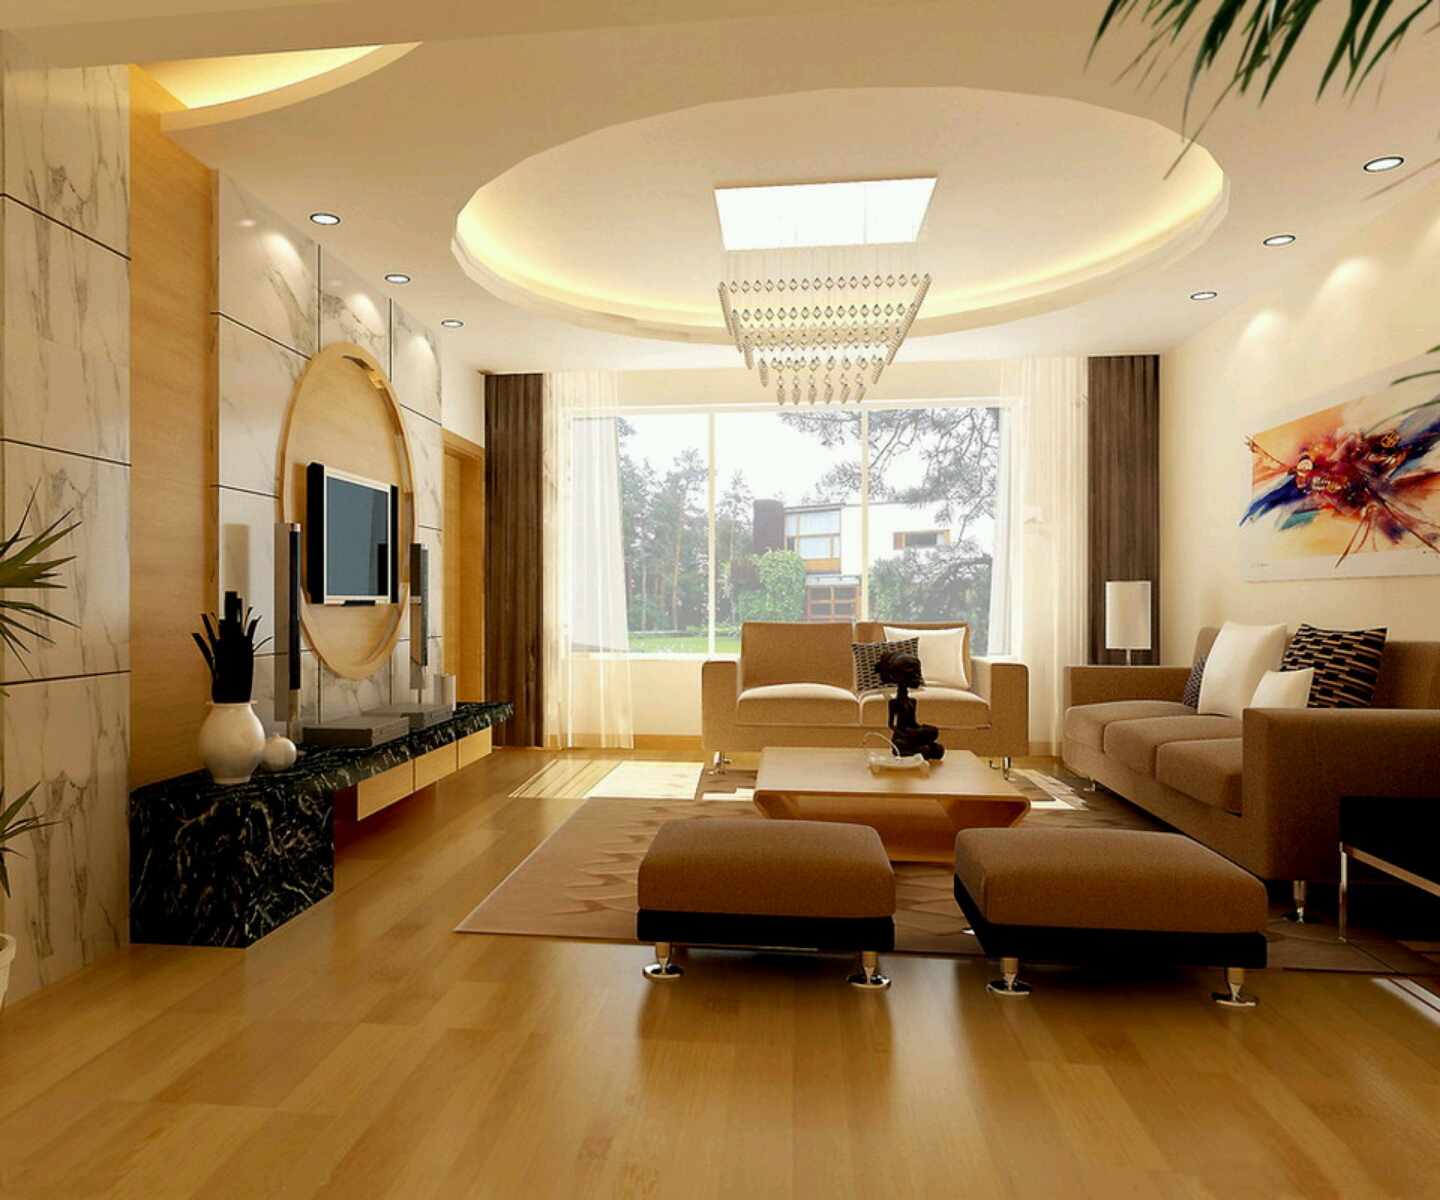 New home designs latest modern interior decoration for Latest home